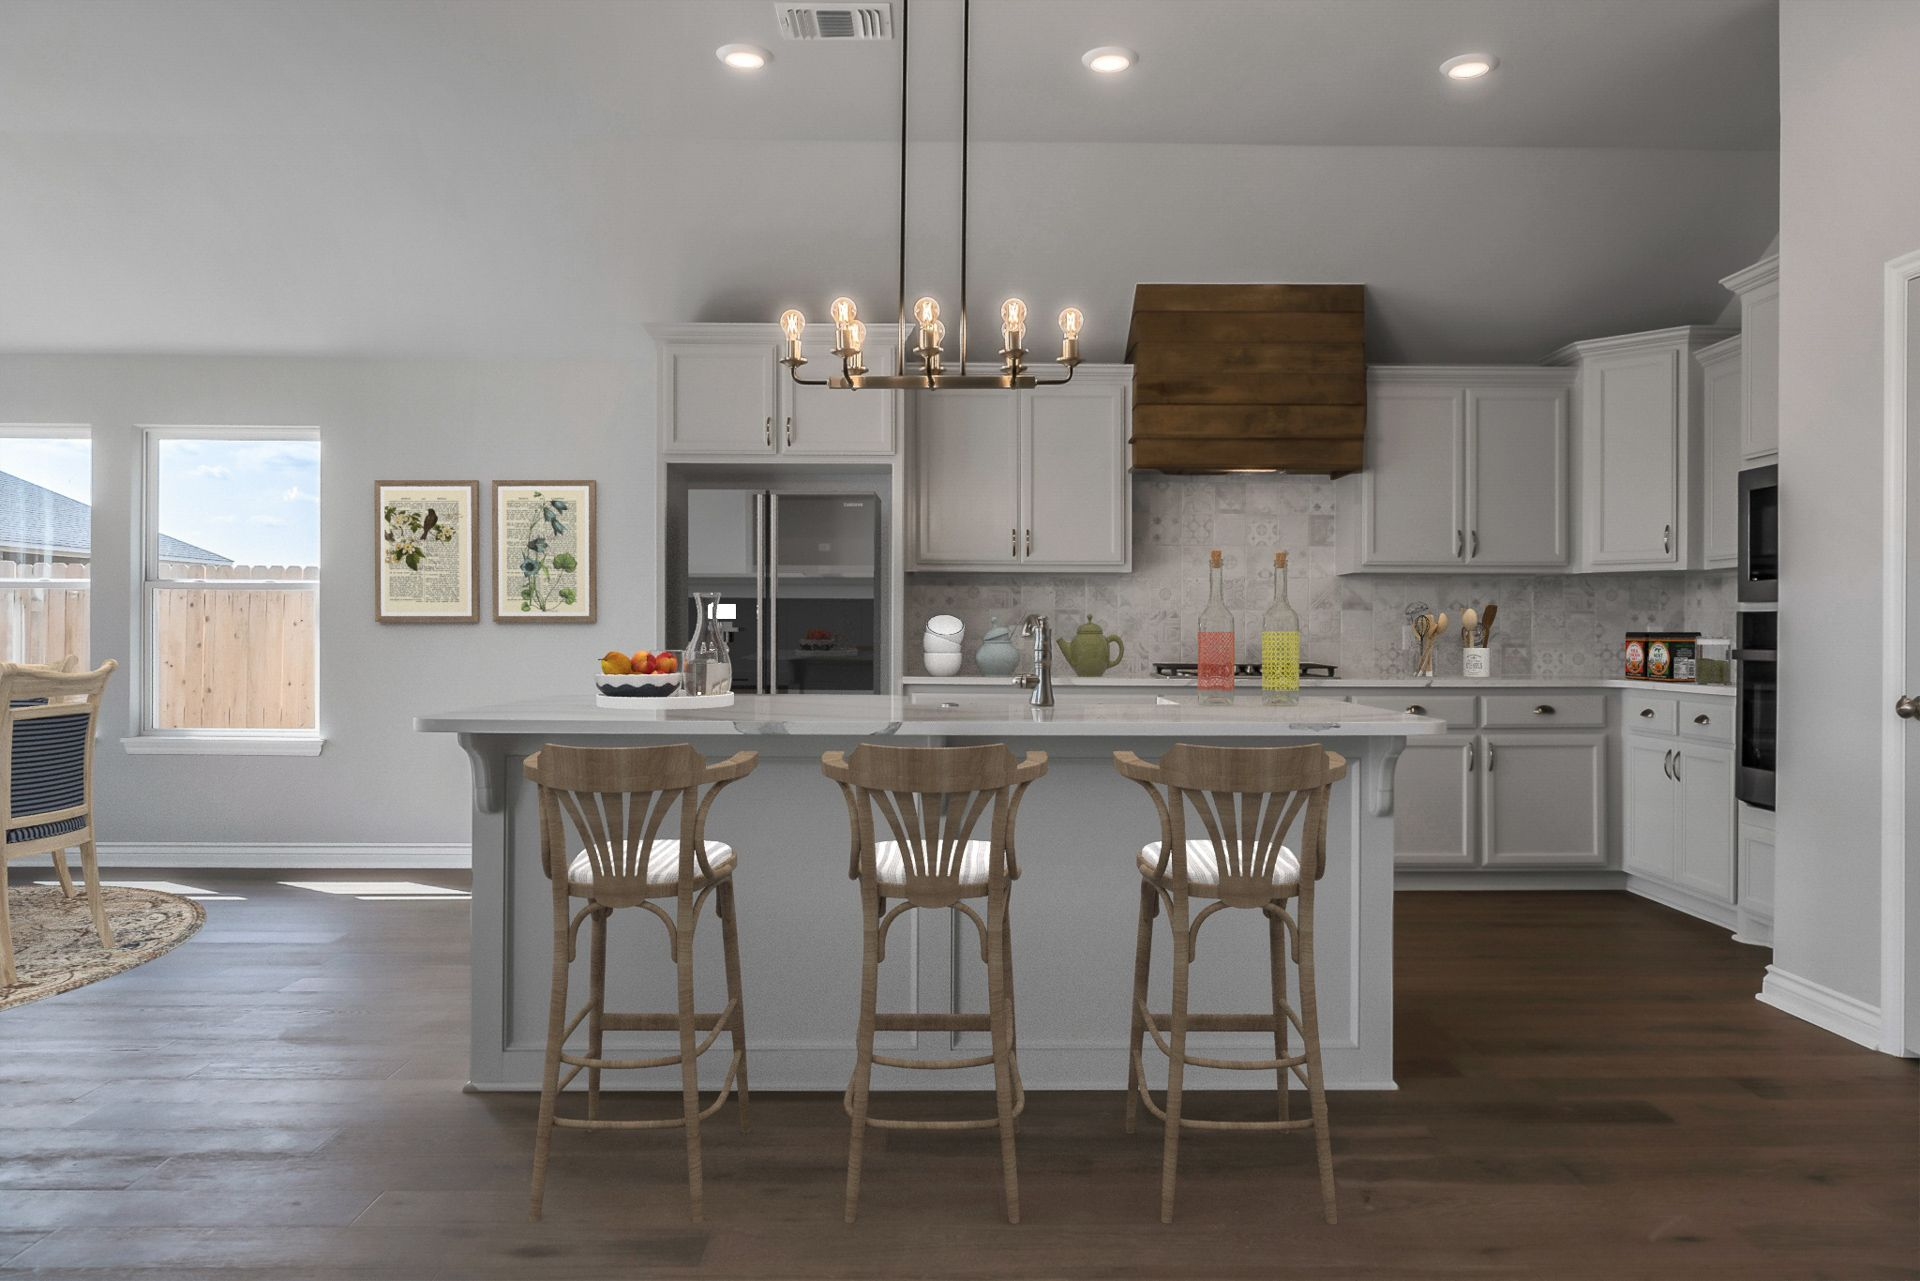 Kitchen featured in the Pendleton By Ideal Homes in Oklahoma City, OK